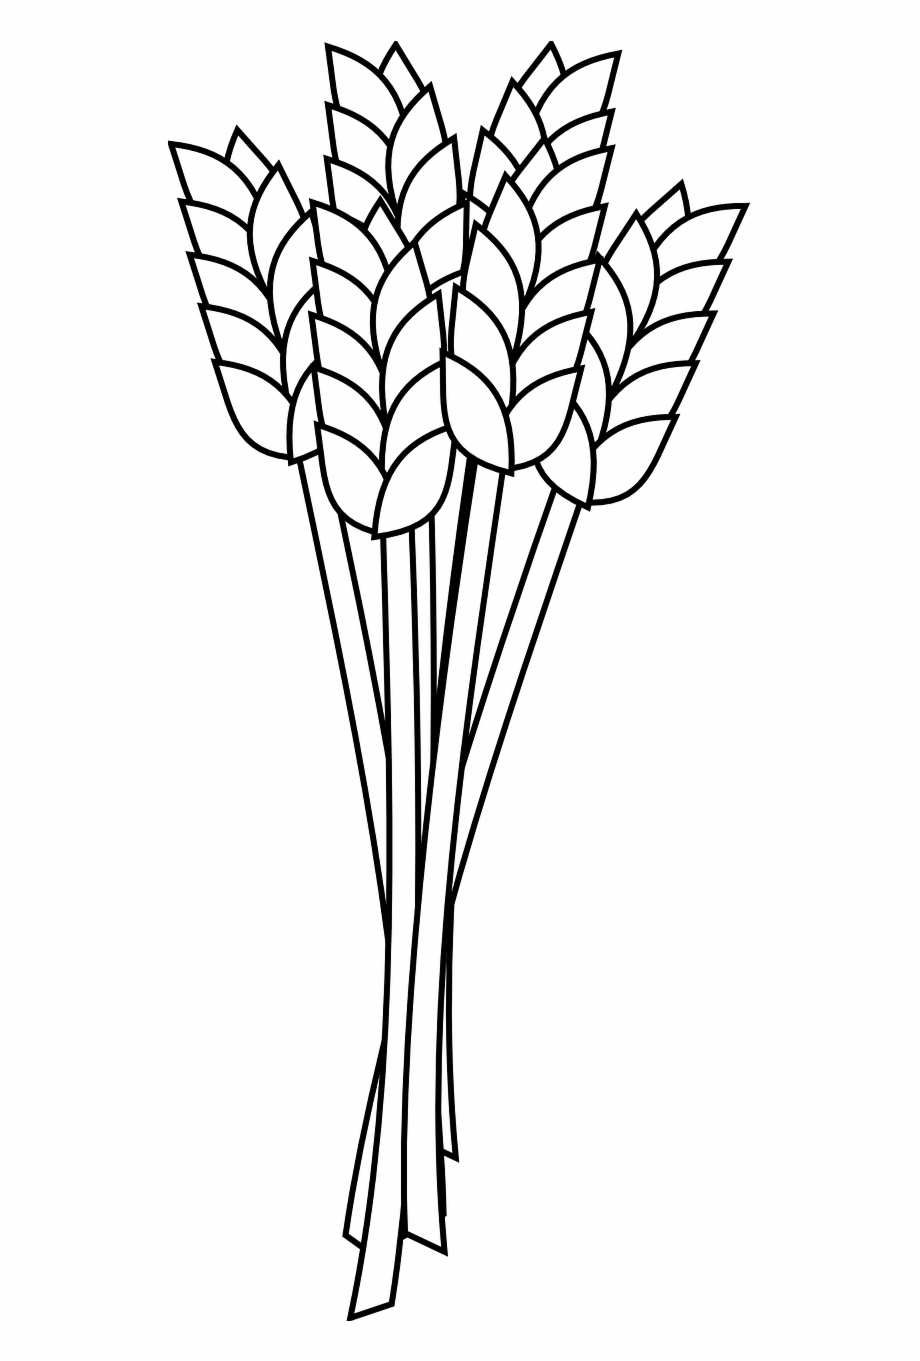 Wheat Grain Agriculture Crop Png Image.